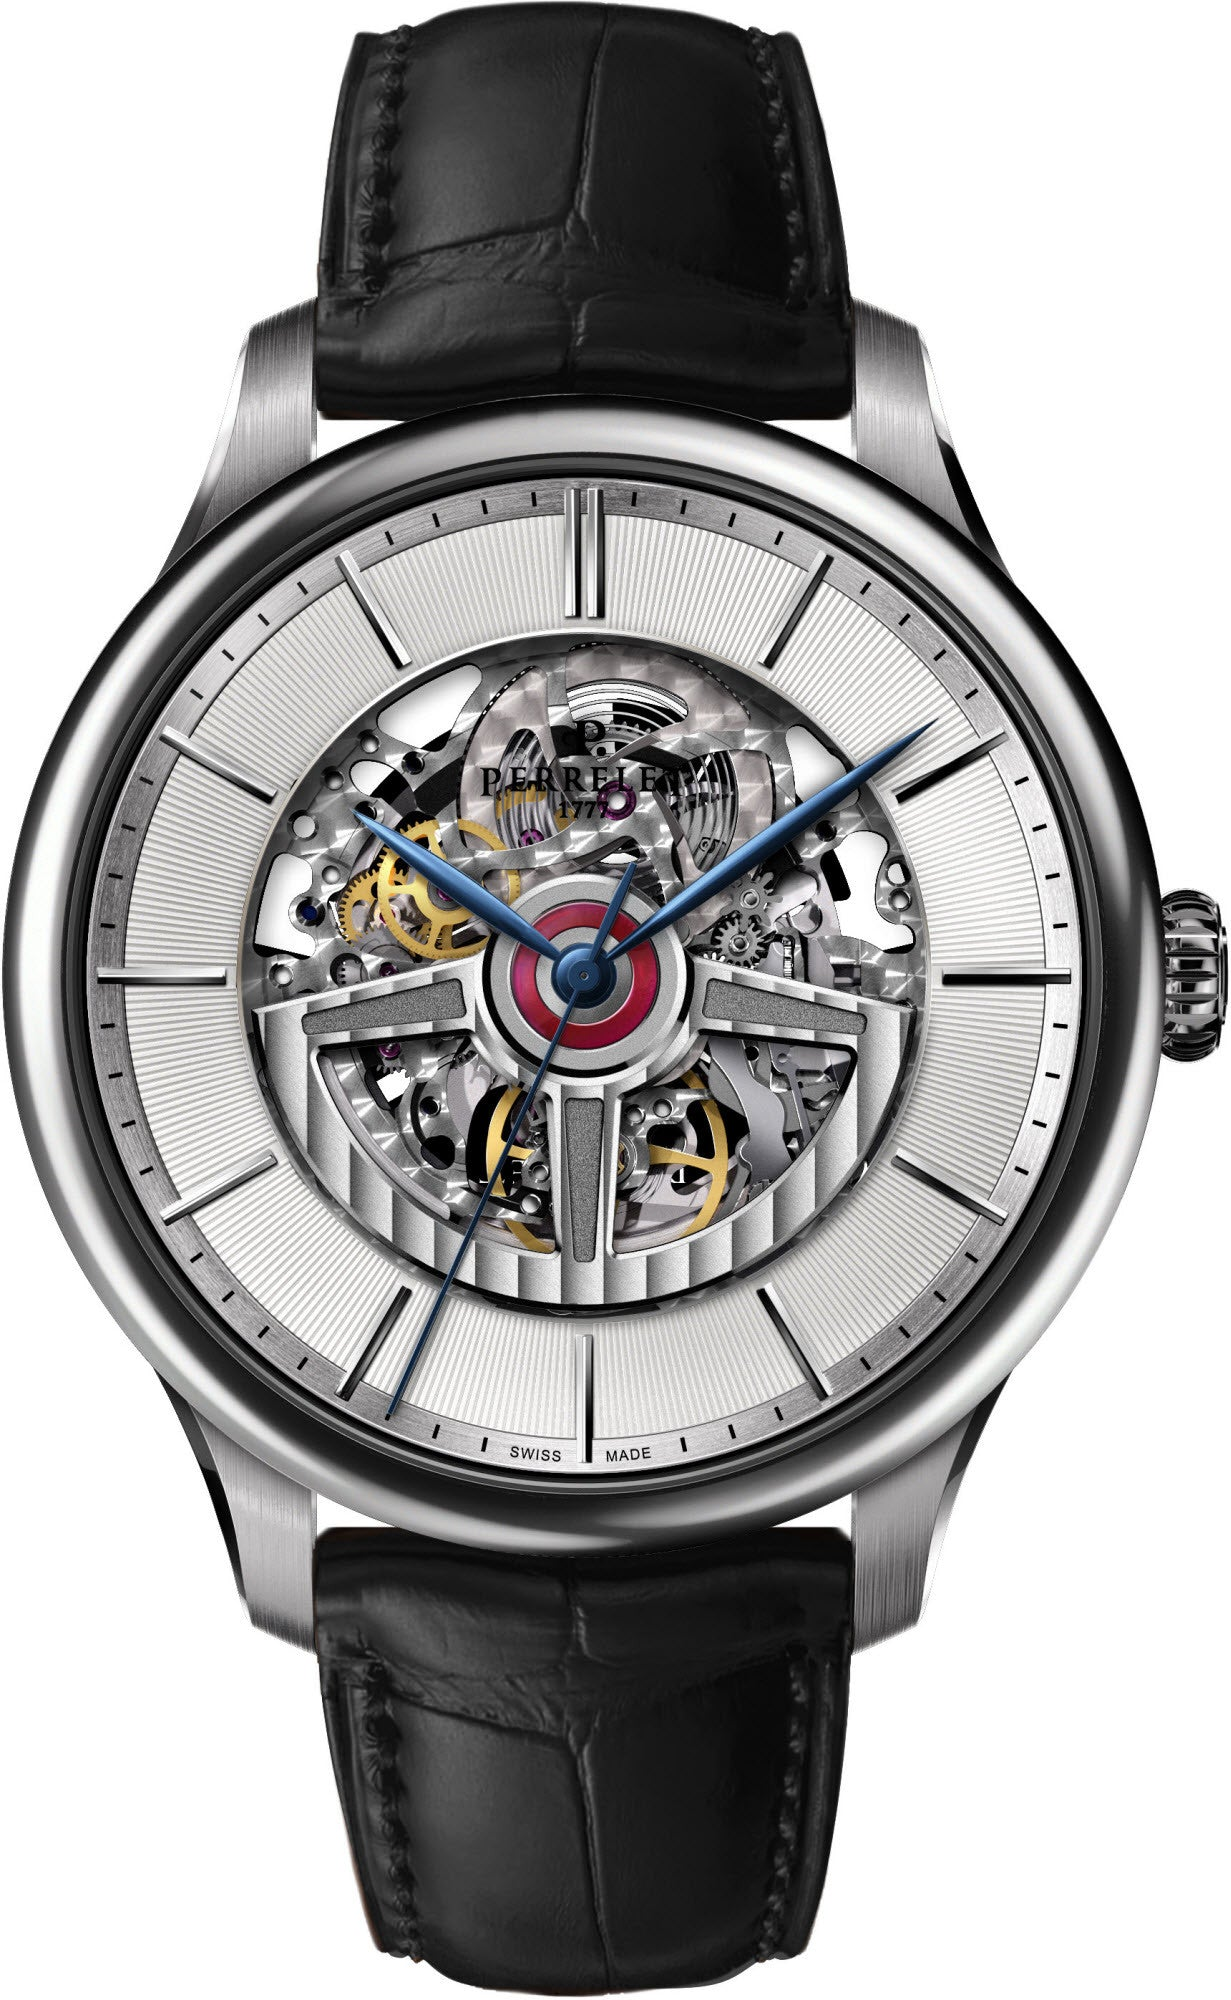 Perrelet Watch First Class Double Rotor Skeleton